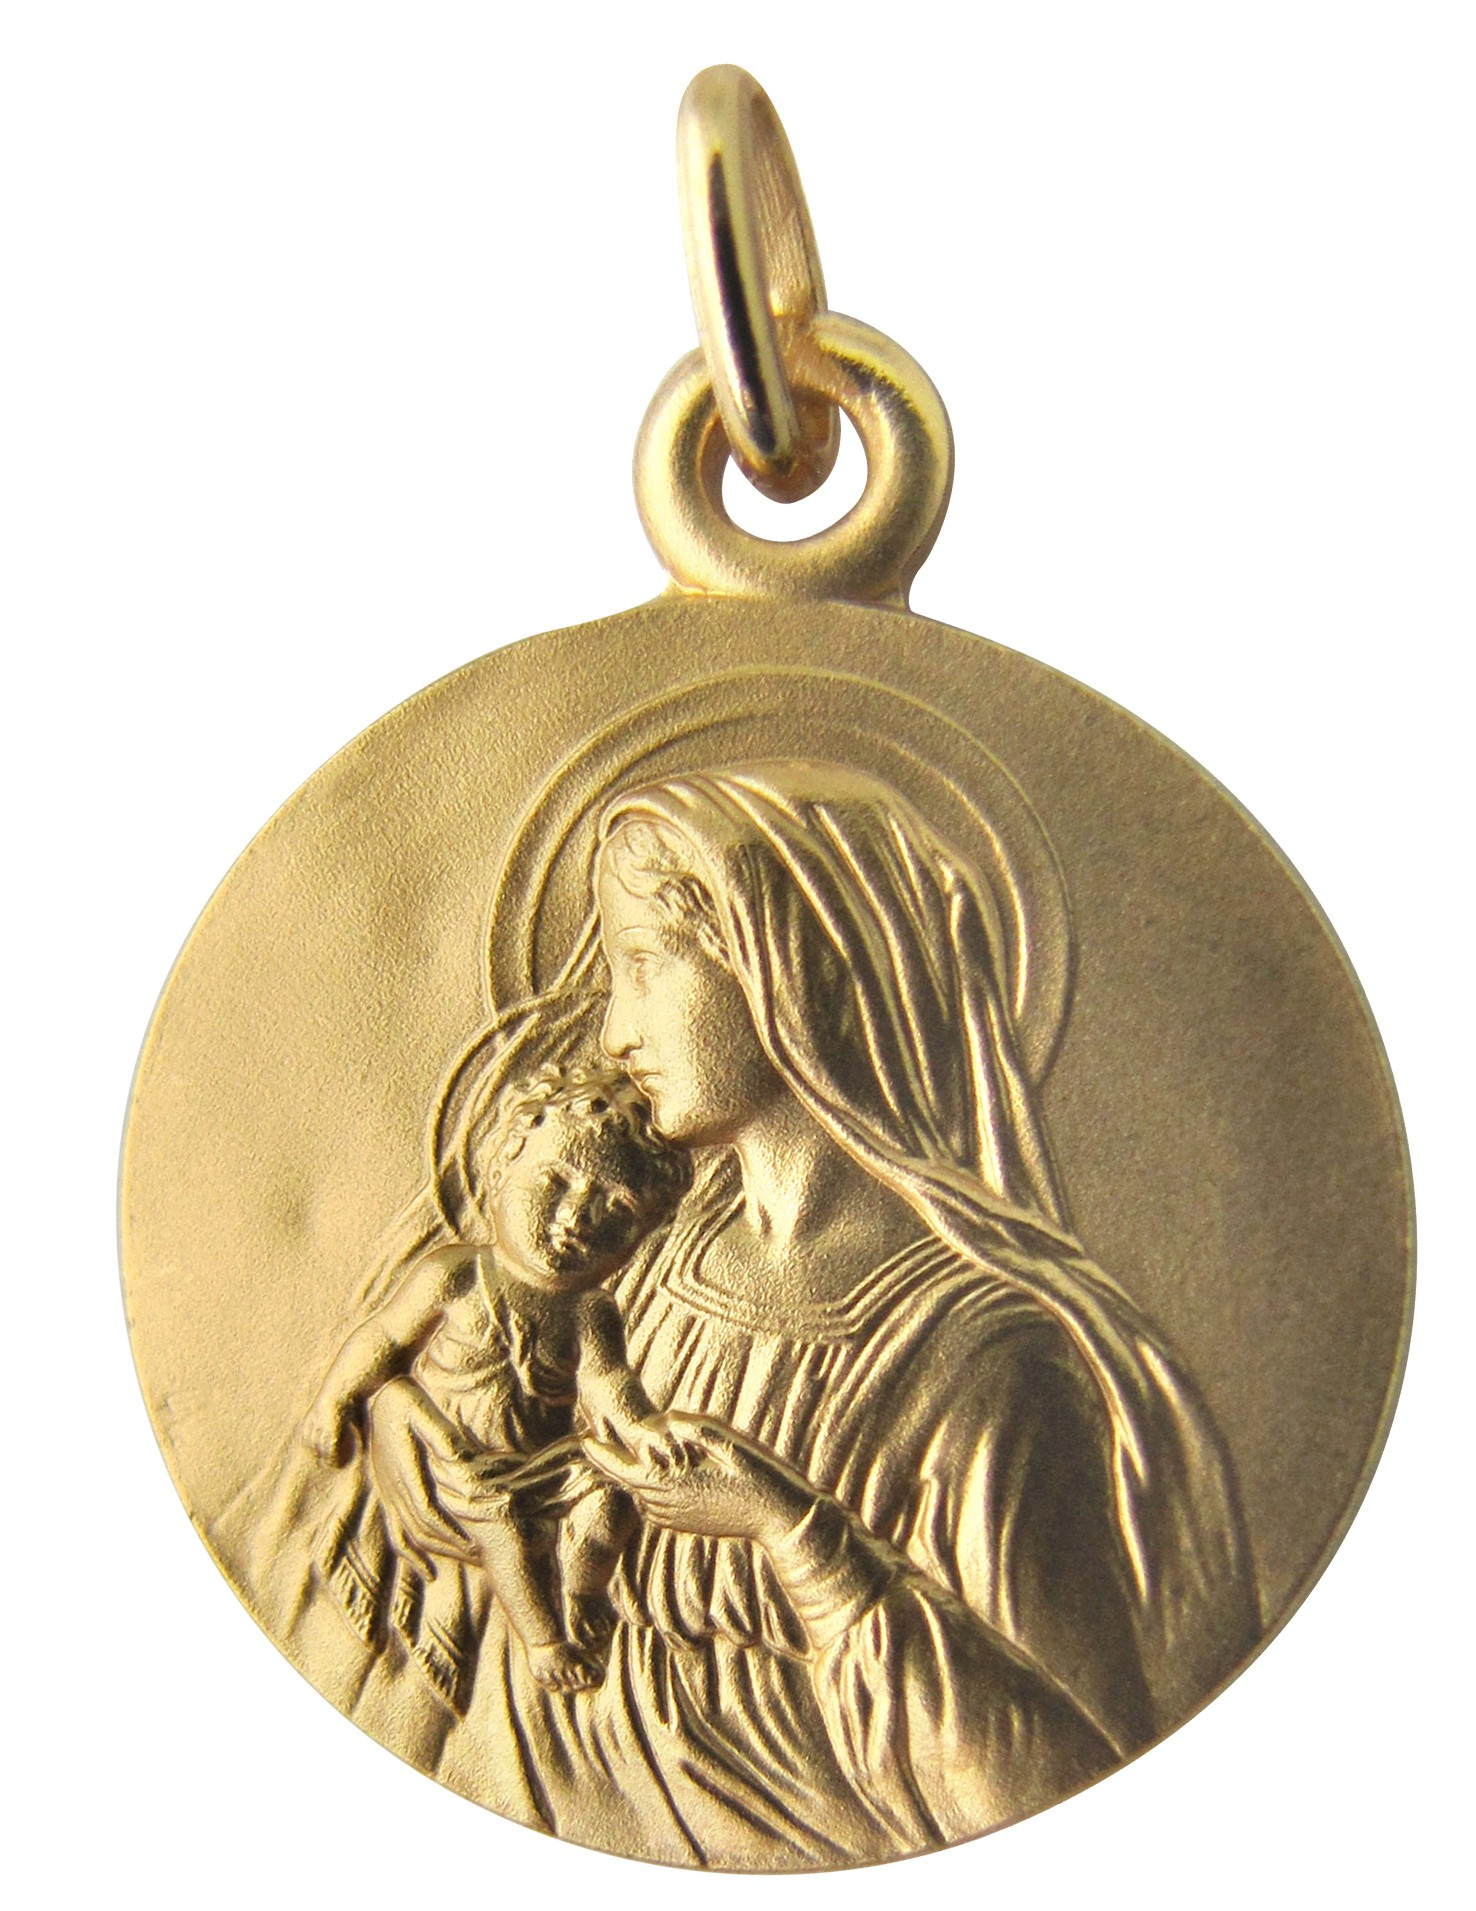 mother gold in yellow earrings and child